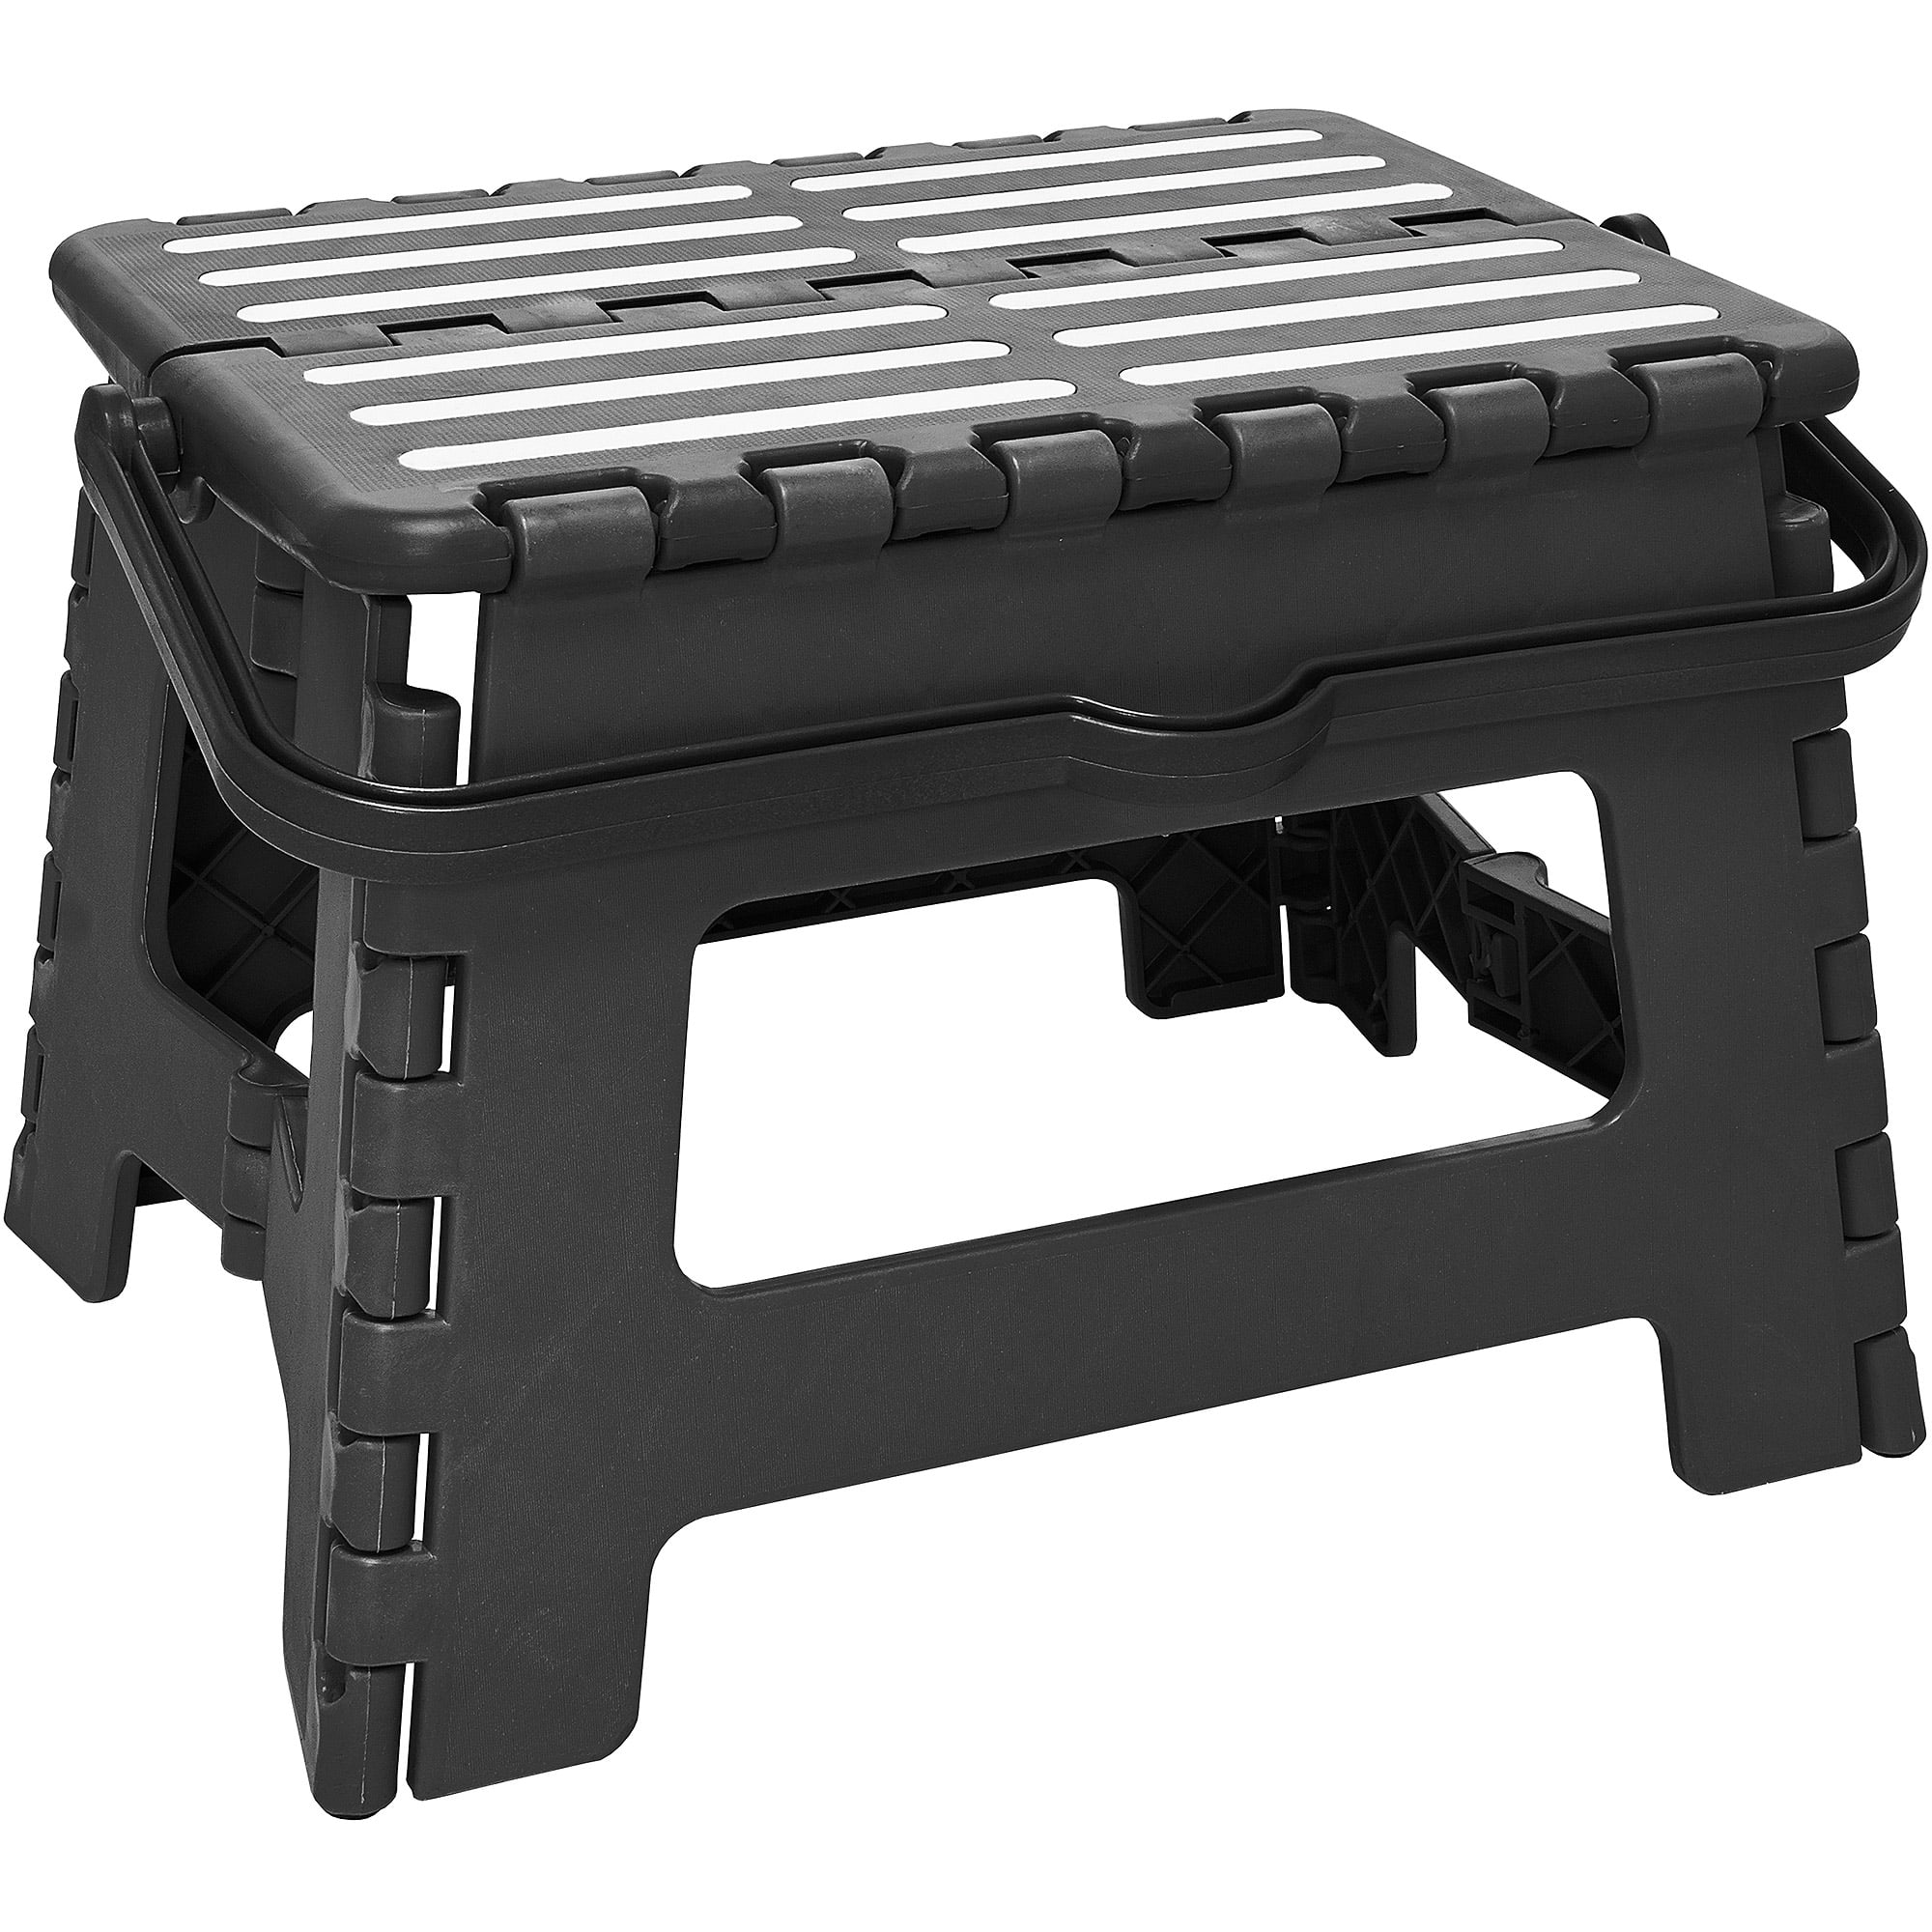 Simplify Striped Folding Step Stool with Handle by Kennedy International Inc